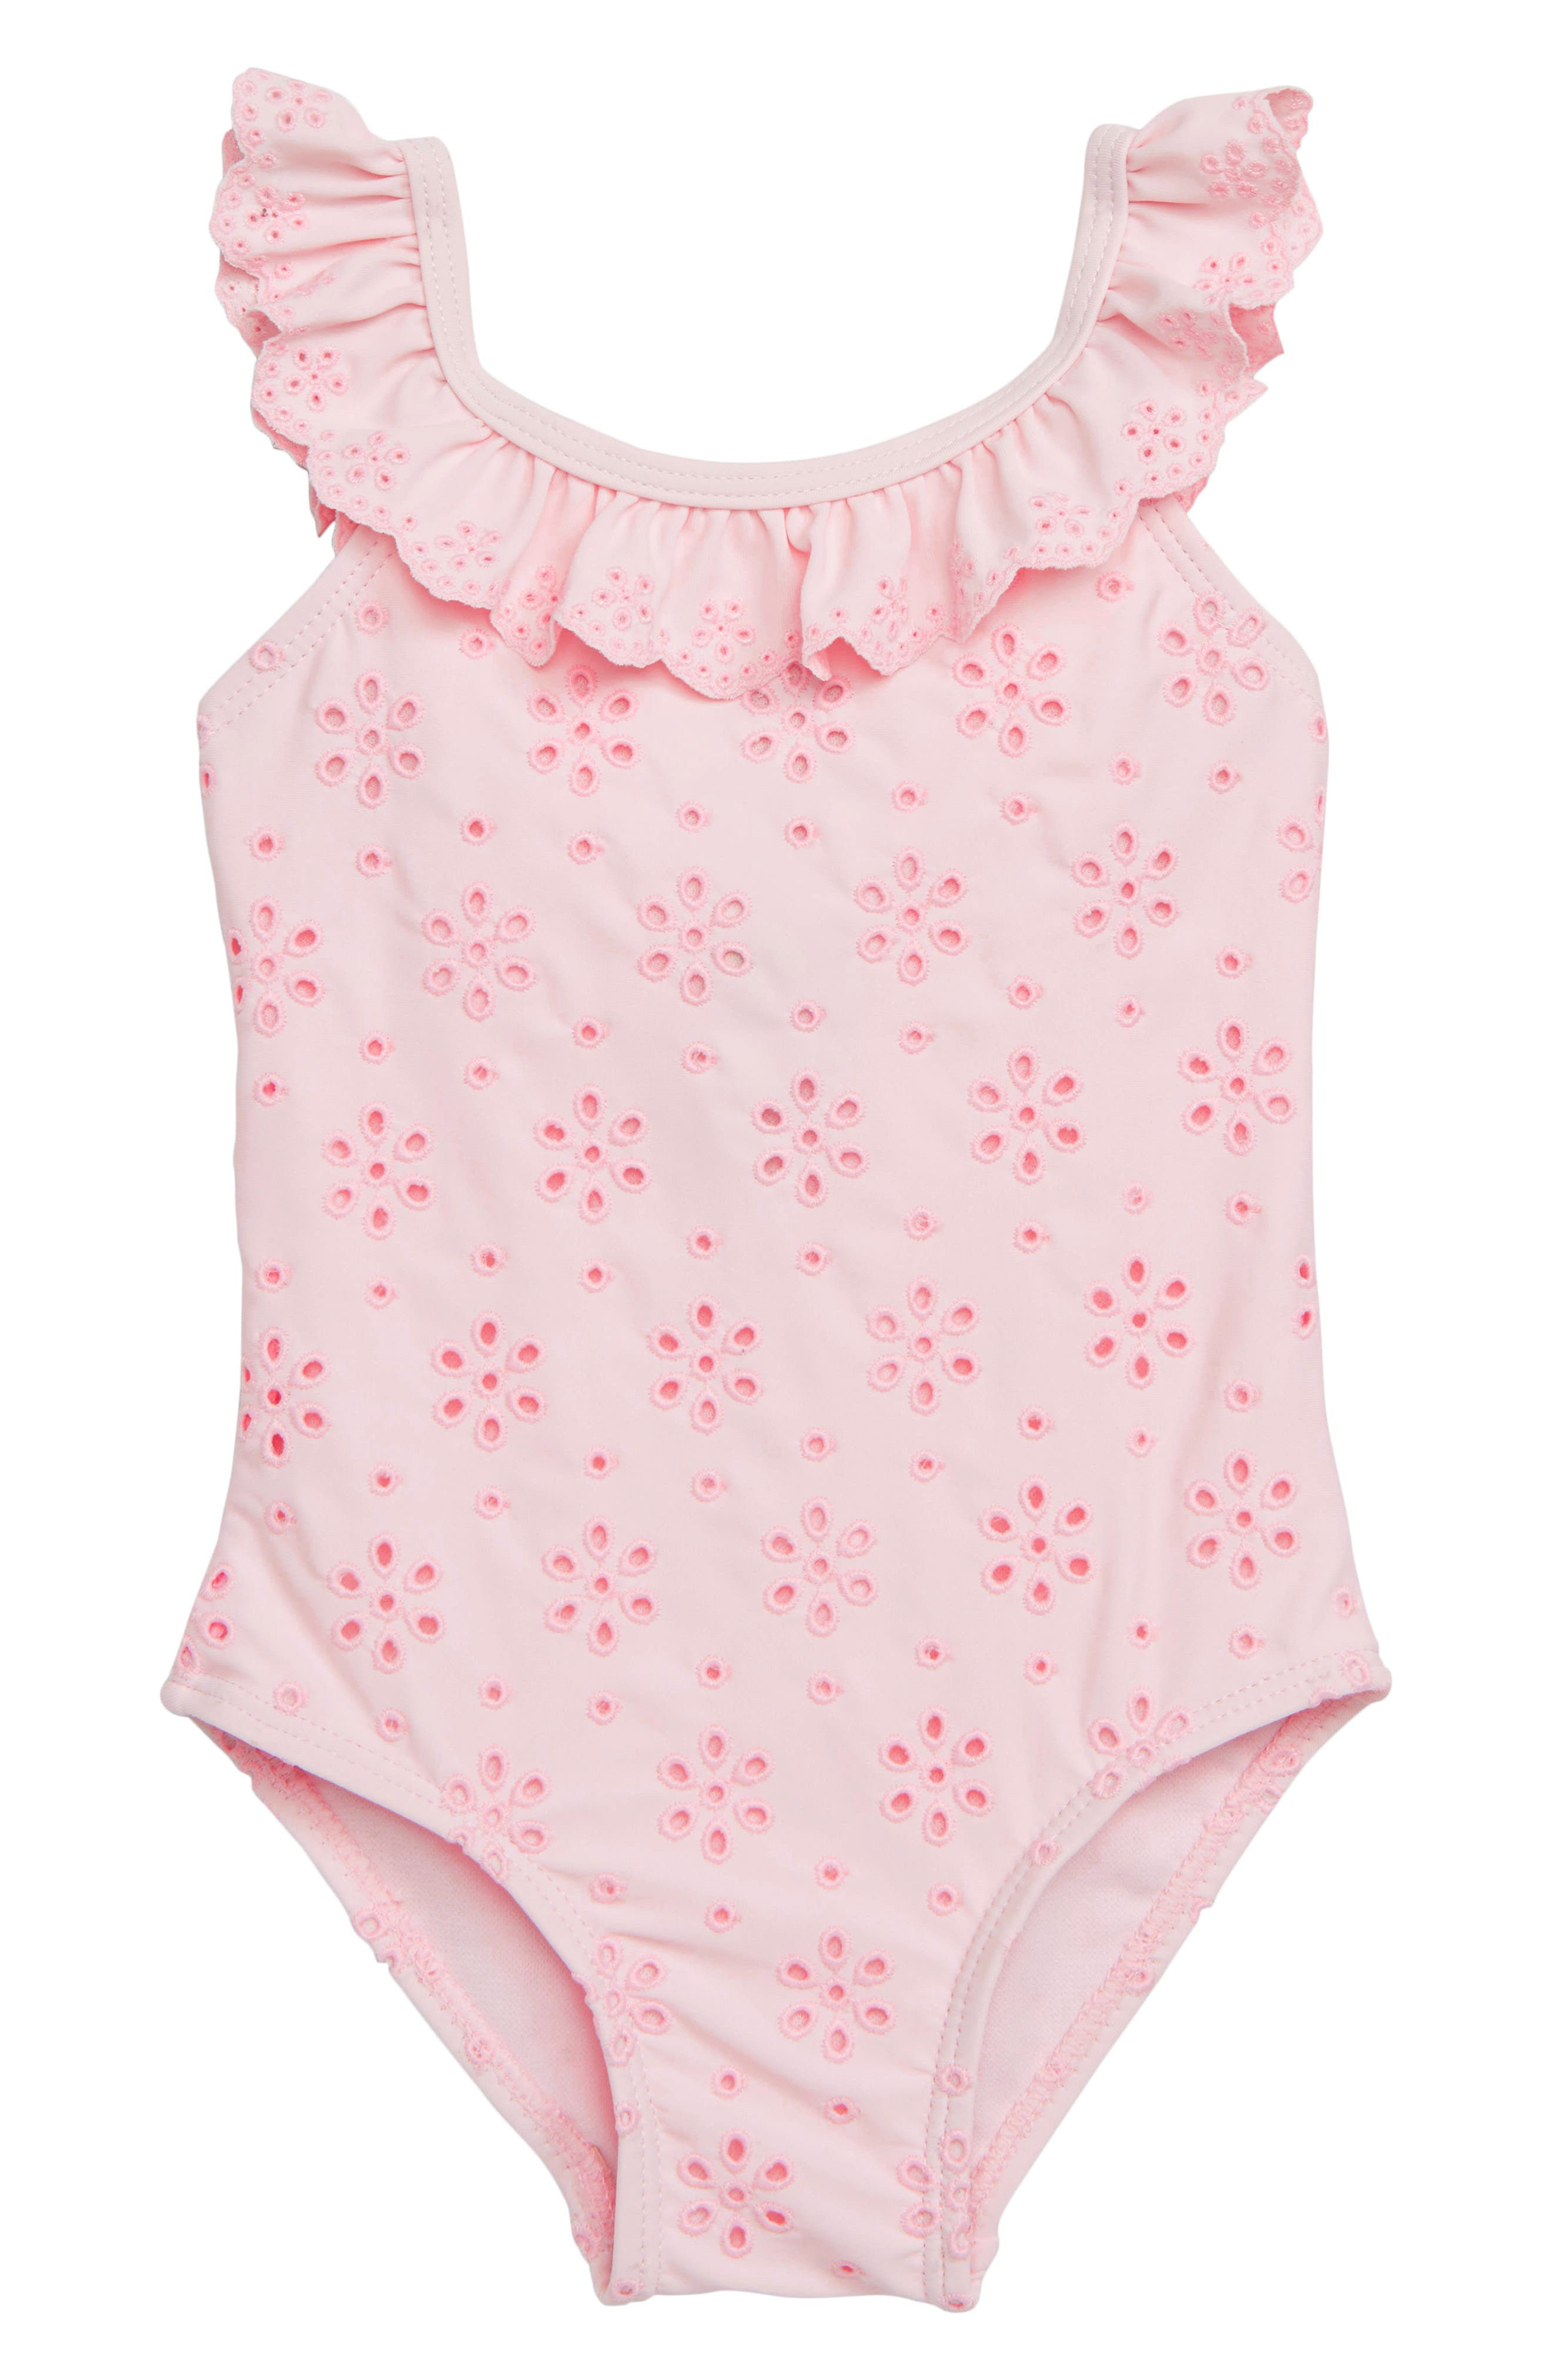 Ruffle Eyelet One-Piece Swimsuit,                             Main thumbnail 1, color,                             PINK